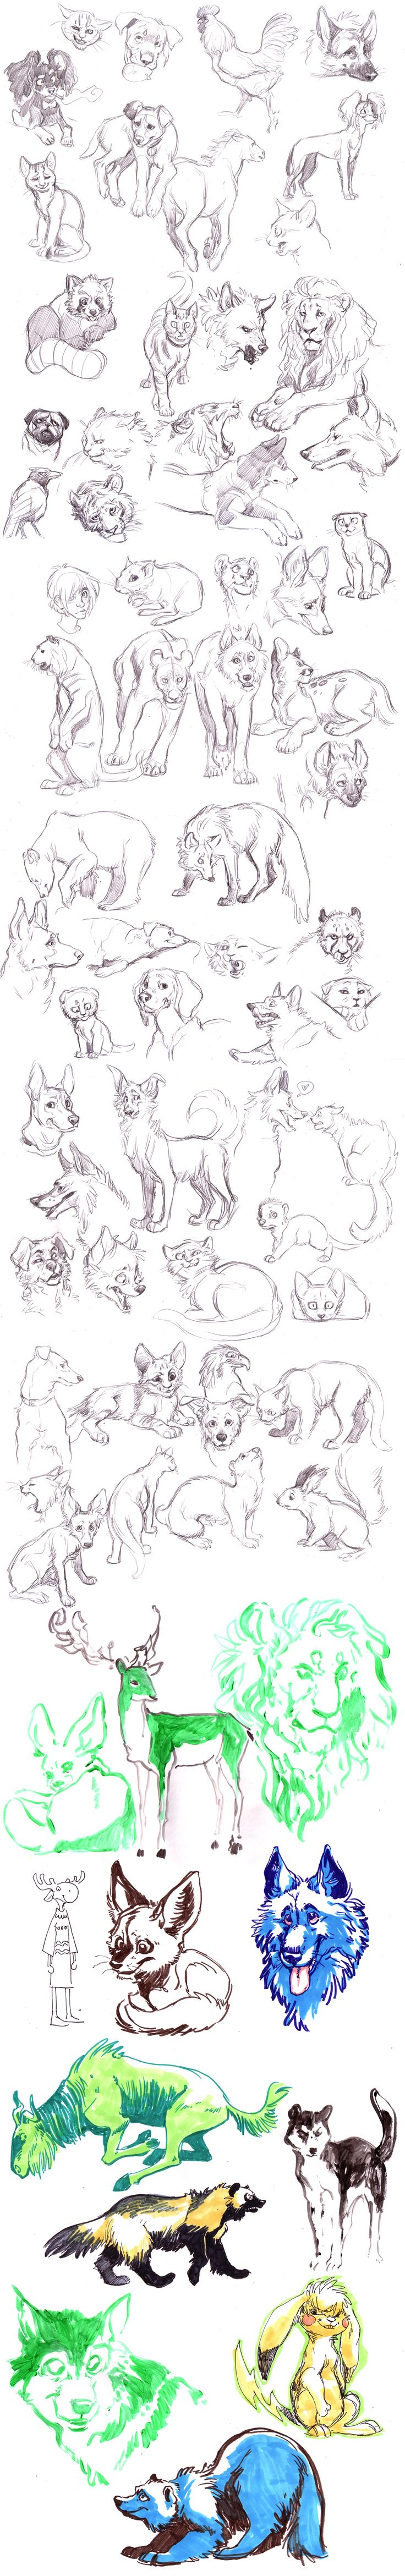 I pinned this picture because I used some of the animals in my sketches and this is what I based the parts of them that I used on